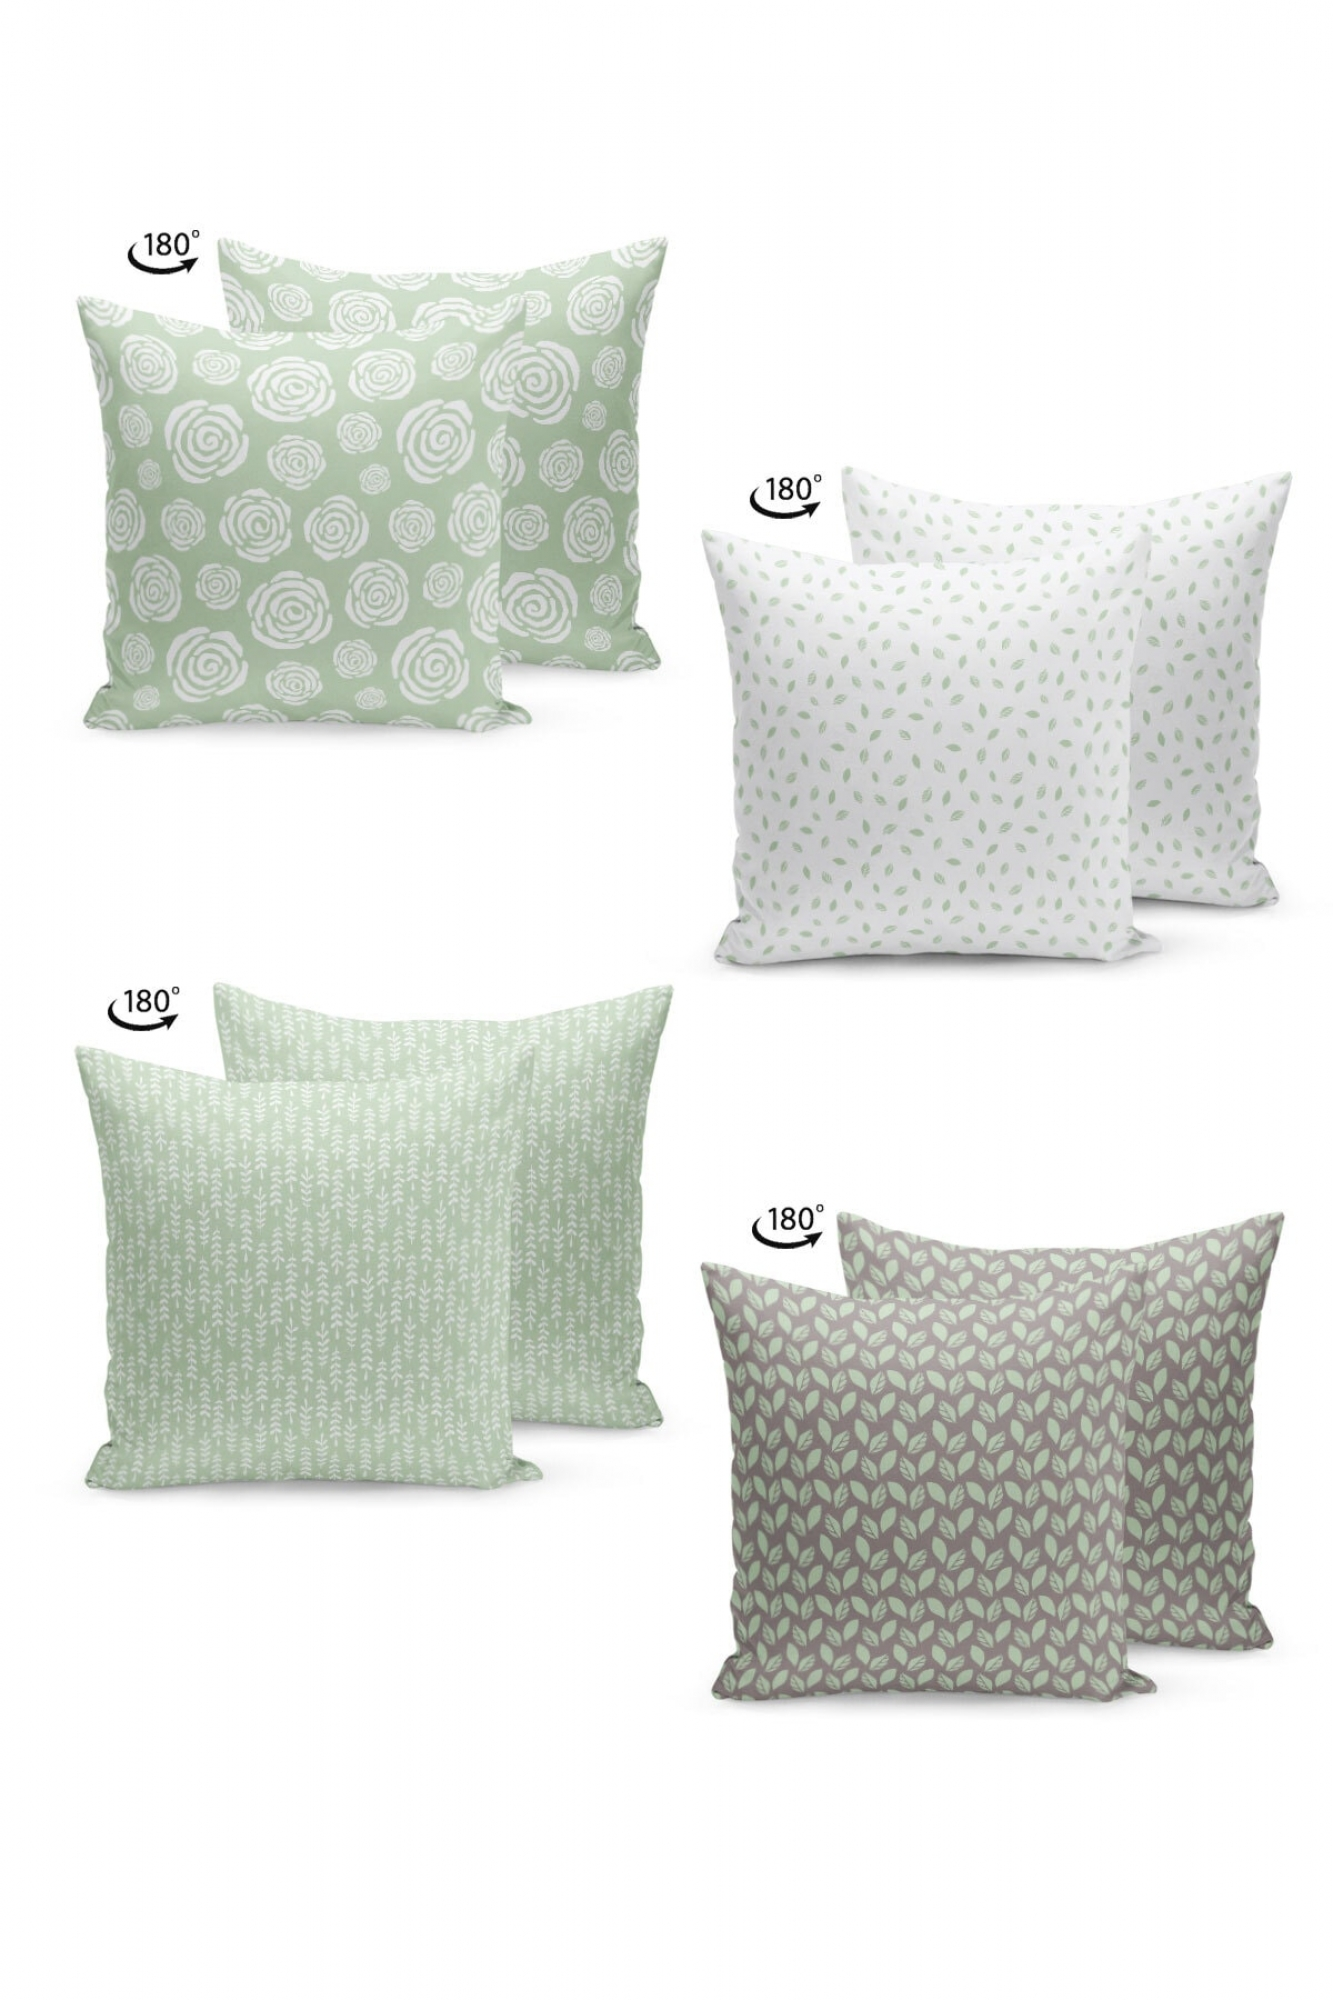 Pillowcases - Set of 4 Calm